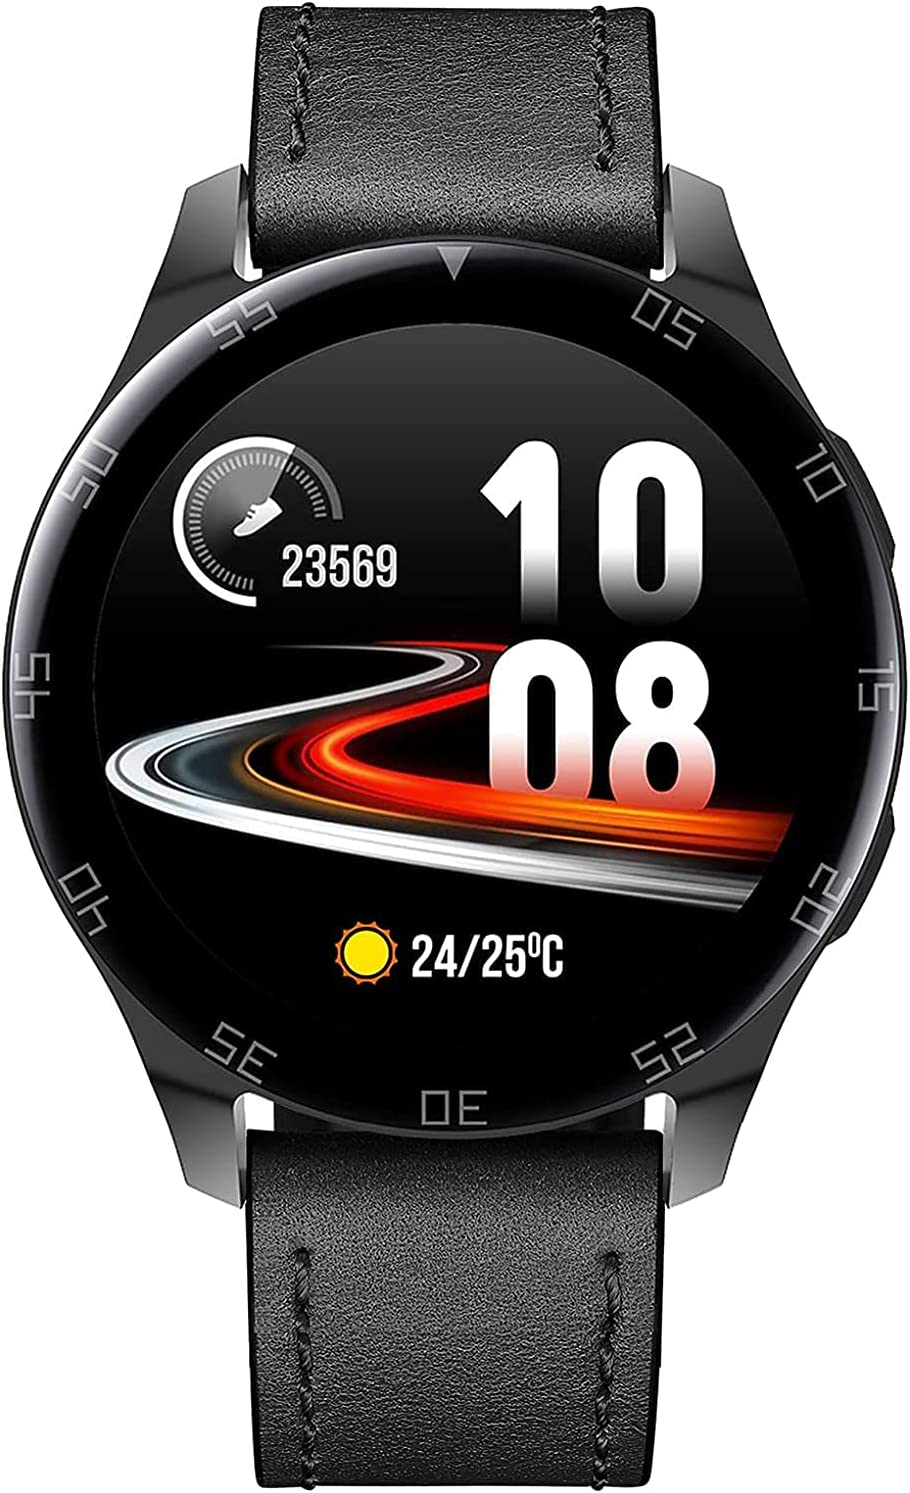 SmartWatch Complete Free Shipping Fitness Watch Baltimore Mall Ladies Men 1.28 Tracker wi Inch